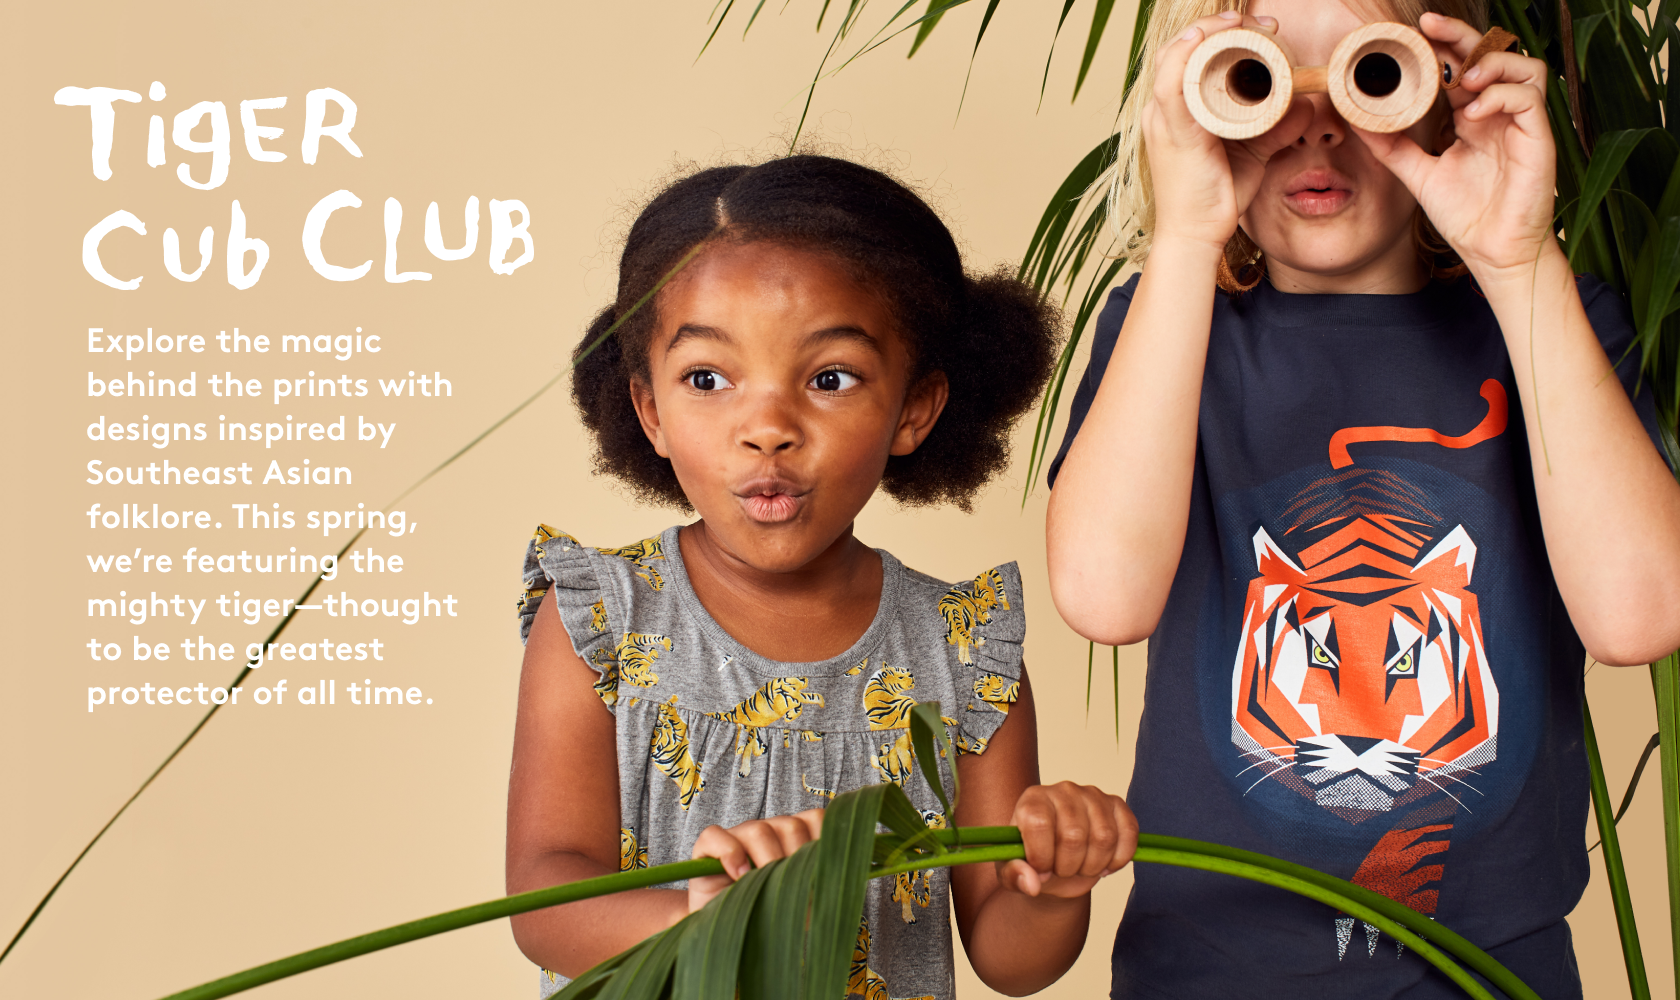 99d6fc24ec070 Tiger Cub Club Explore the magic behind the prints with designs inspired by  Southeast Asian folklore ...